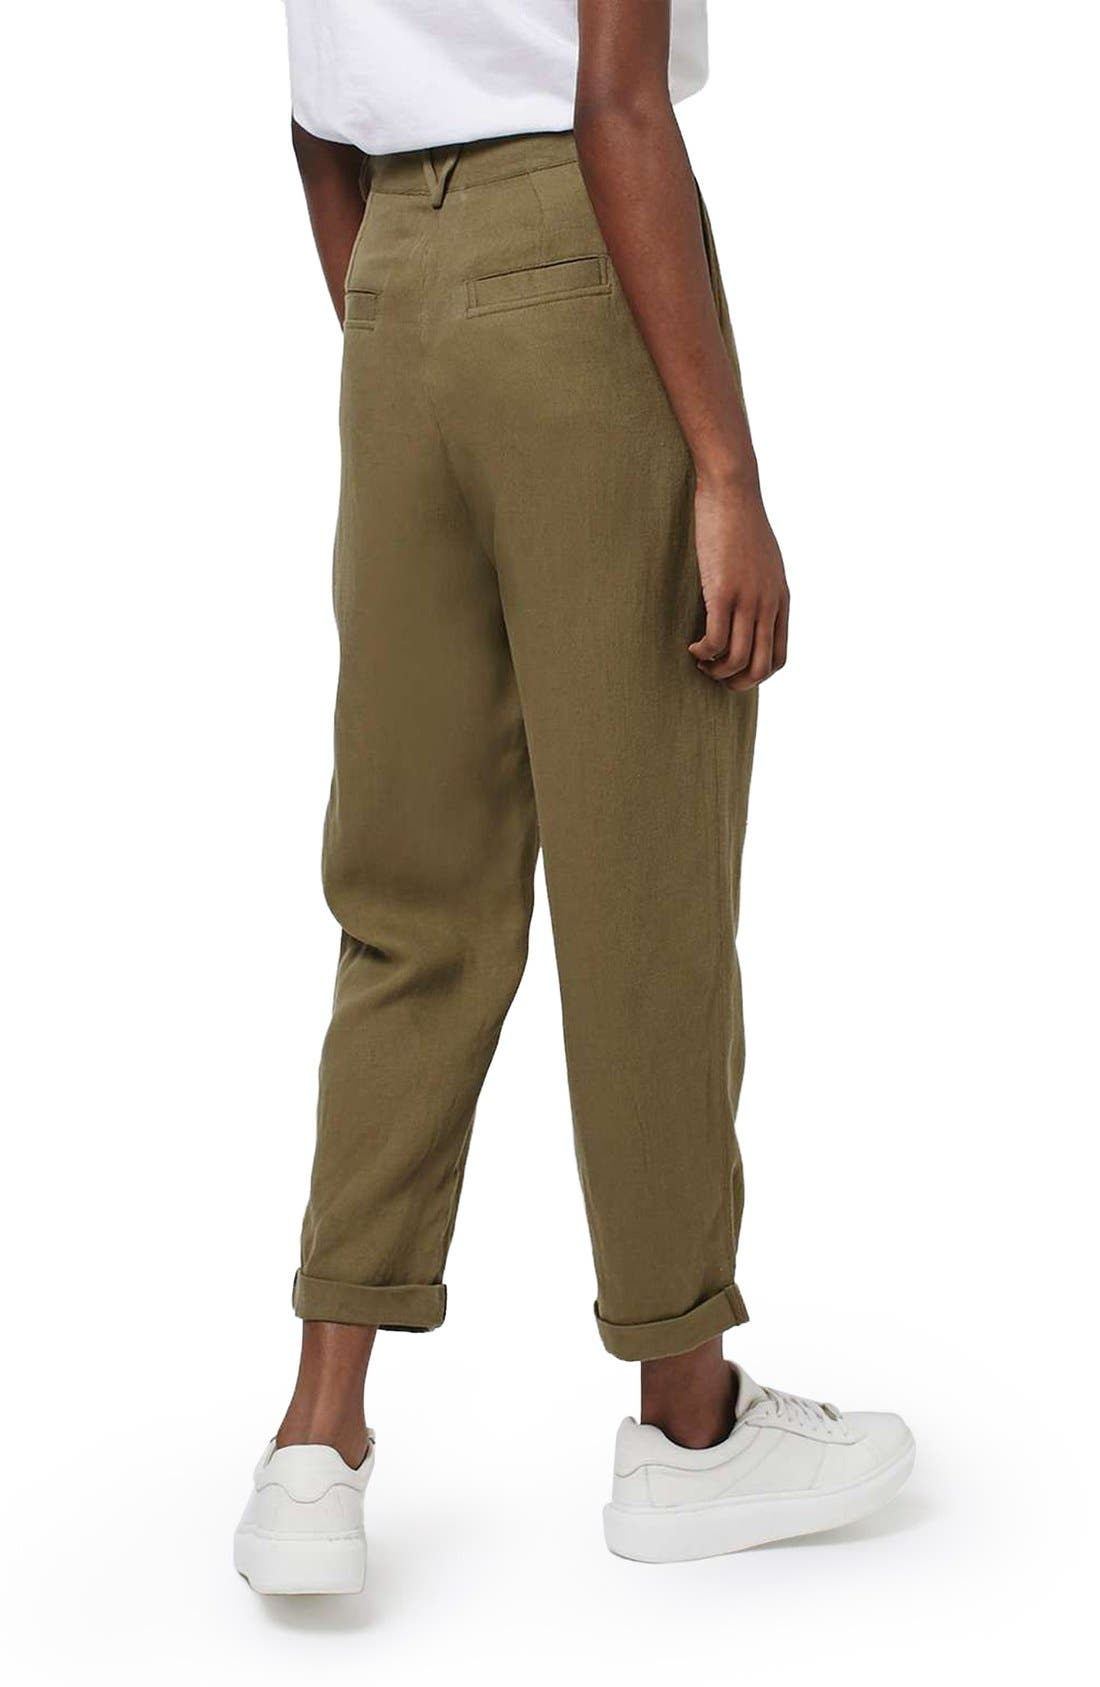 Alternate Image 2  - Topshop 'Mensy' Corduroy Peg Trousers